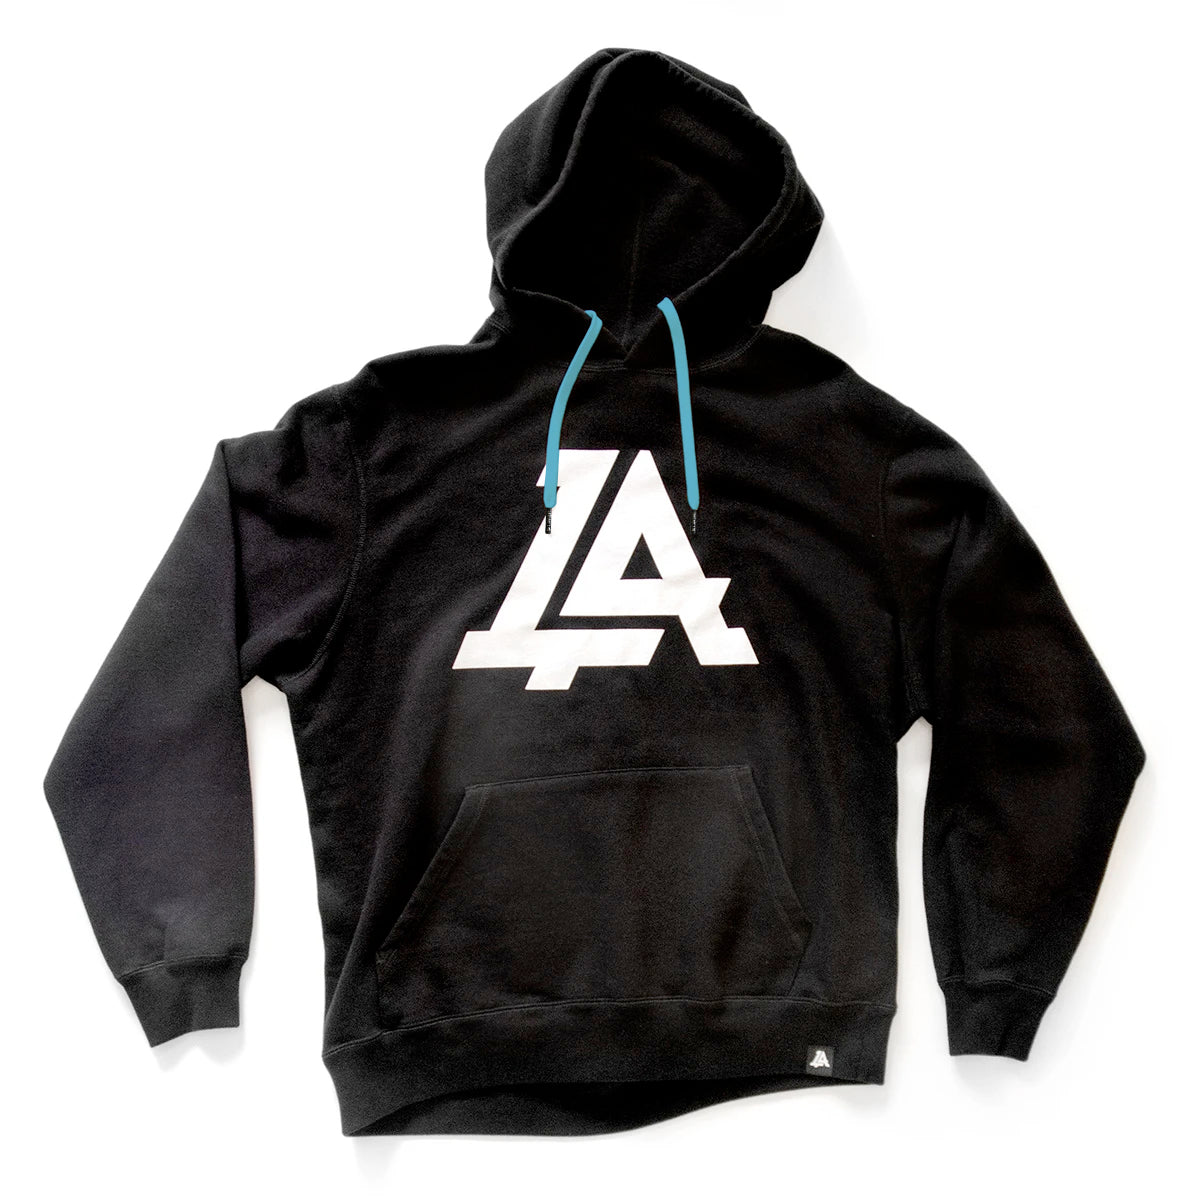 Lost Art Canada - black icon hoodie sweatshirt front view blue strings